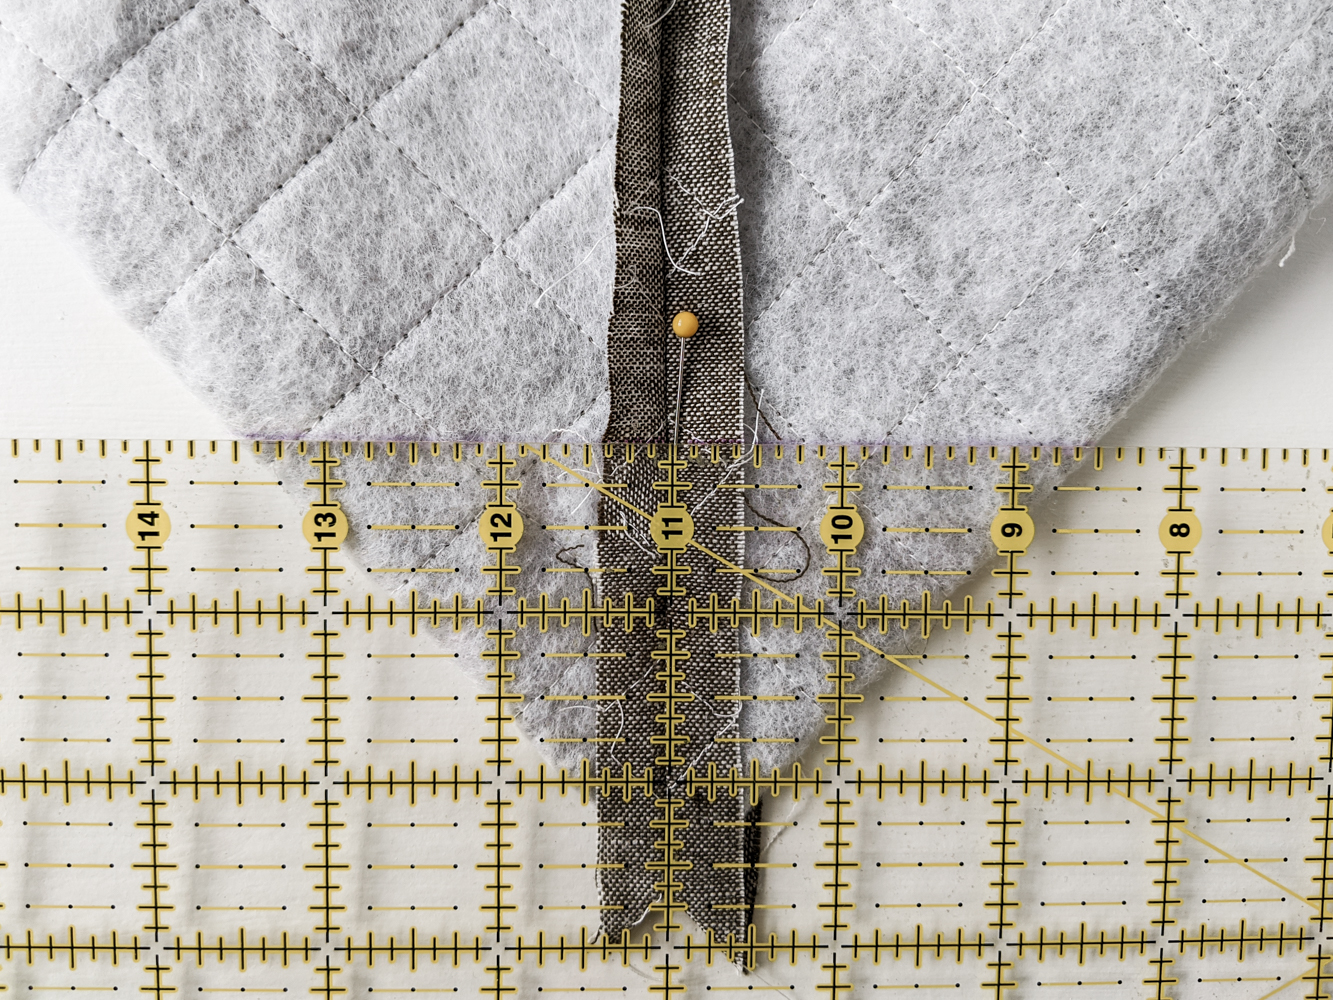 This FREE quilted tote bag tutorial shows step by step how to create a large tote bag using the Modern Fans quilt block pattern. suzyquilts.com #quiltedtote